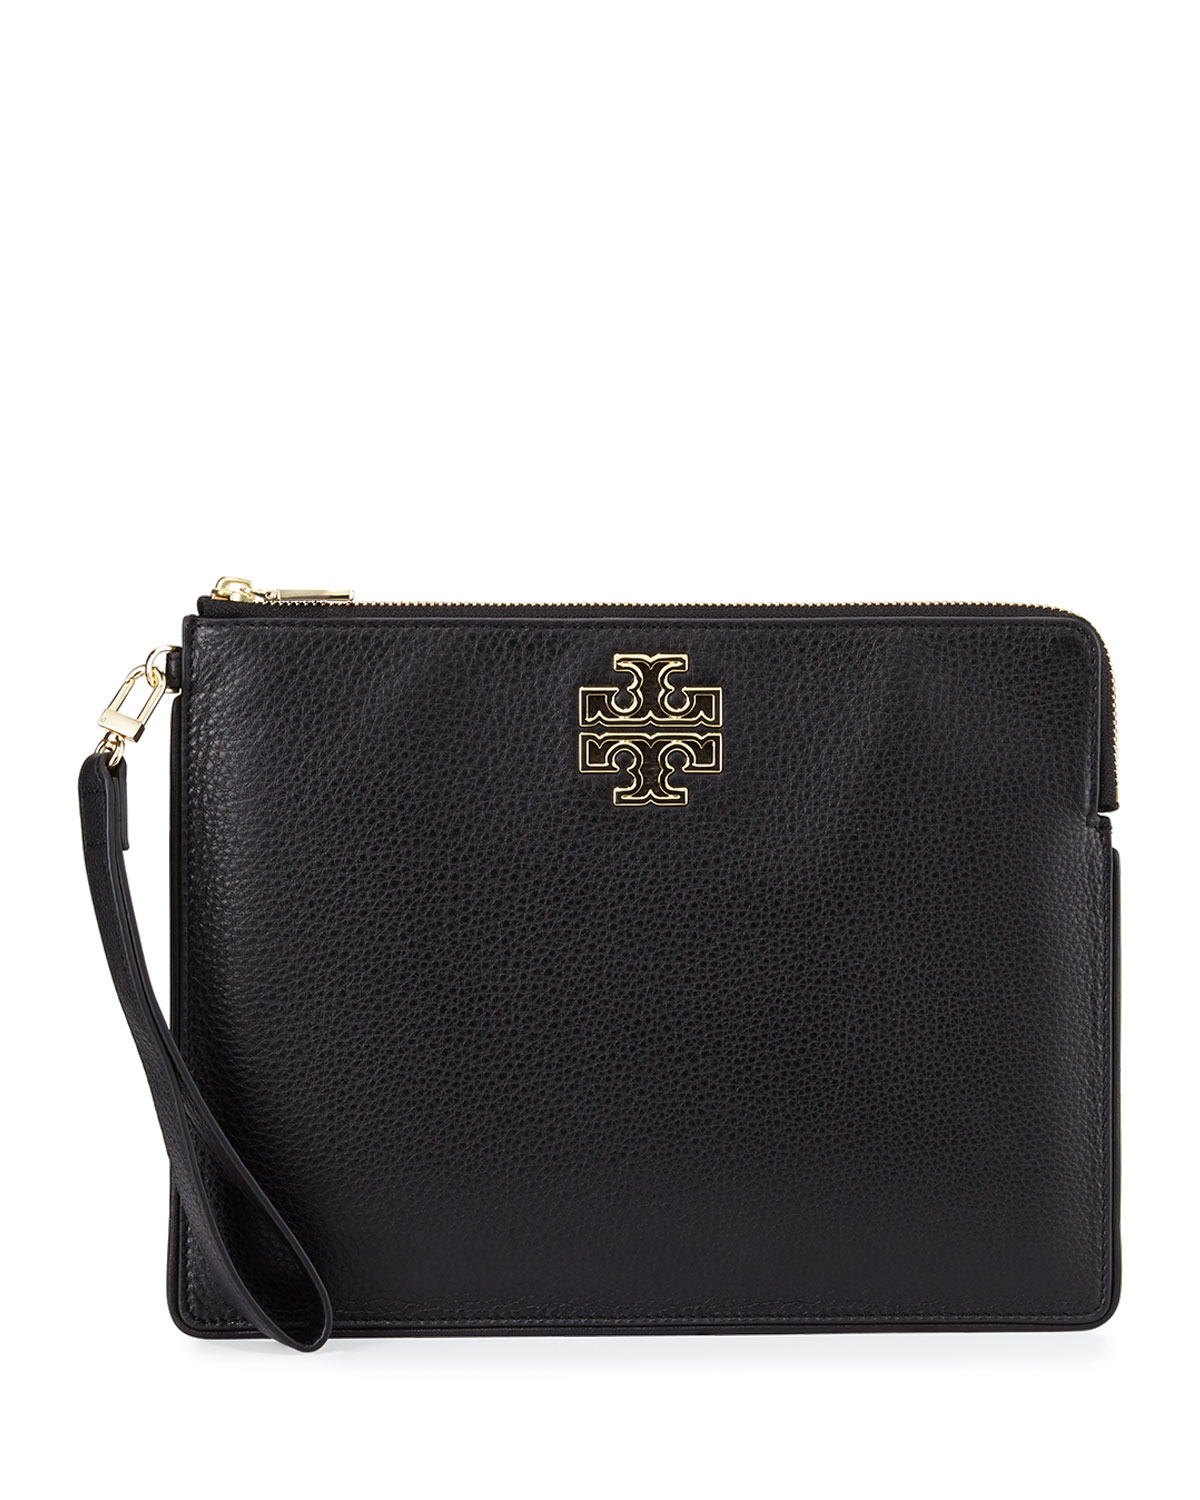 d1dde5606d6 Tory Burch Britten Large Zip Pouch Bag